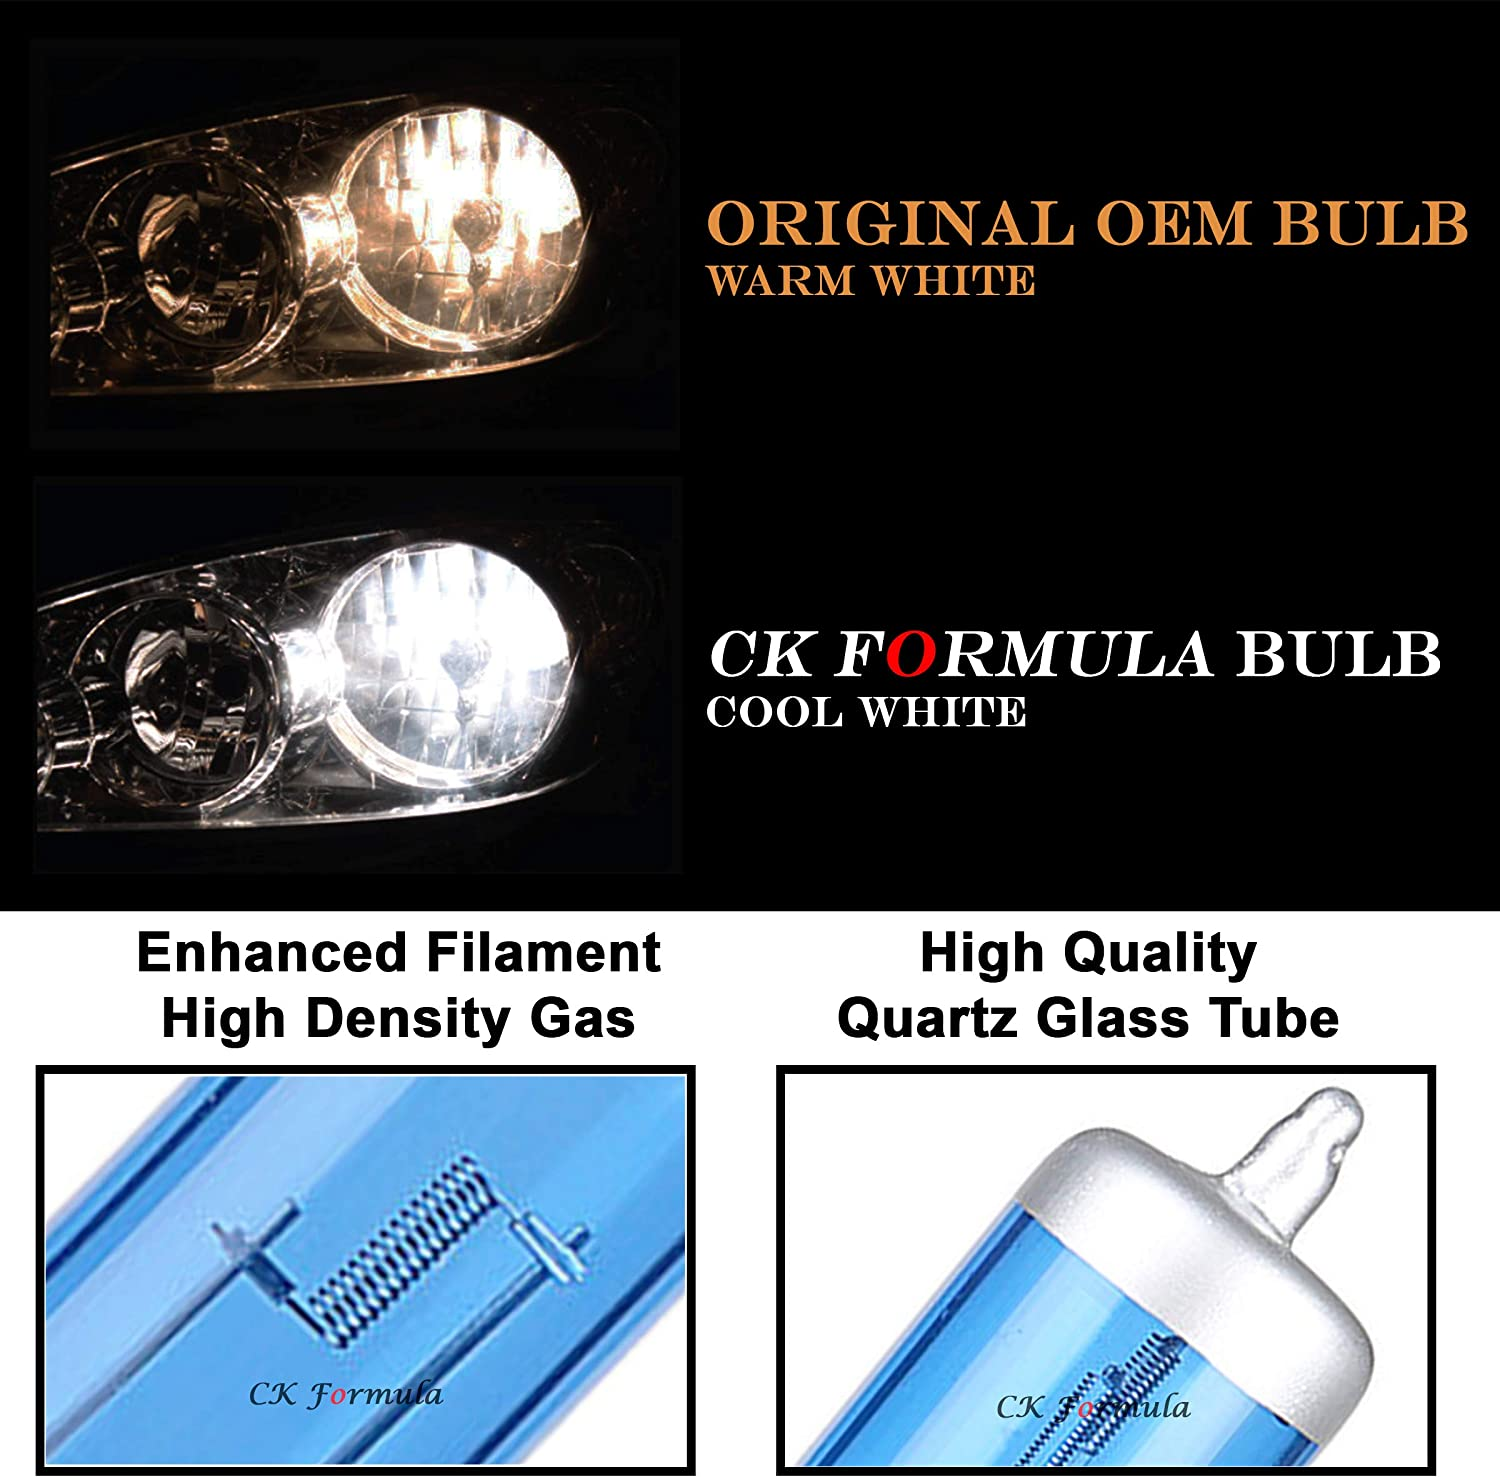 CK Formula Set of 2 9006 Headlight Bulbs Low Beam Headlight Bulb 12V 55W 5000K Super Bright White Headlight Bulbs 9006 Bulb 9006 Headlight Bulb 9006 Halogen 9006 Headlight Car Headlight Bulbs